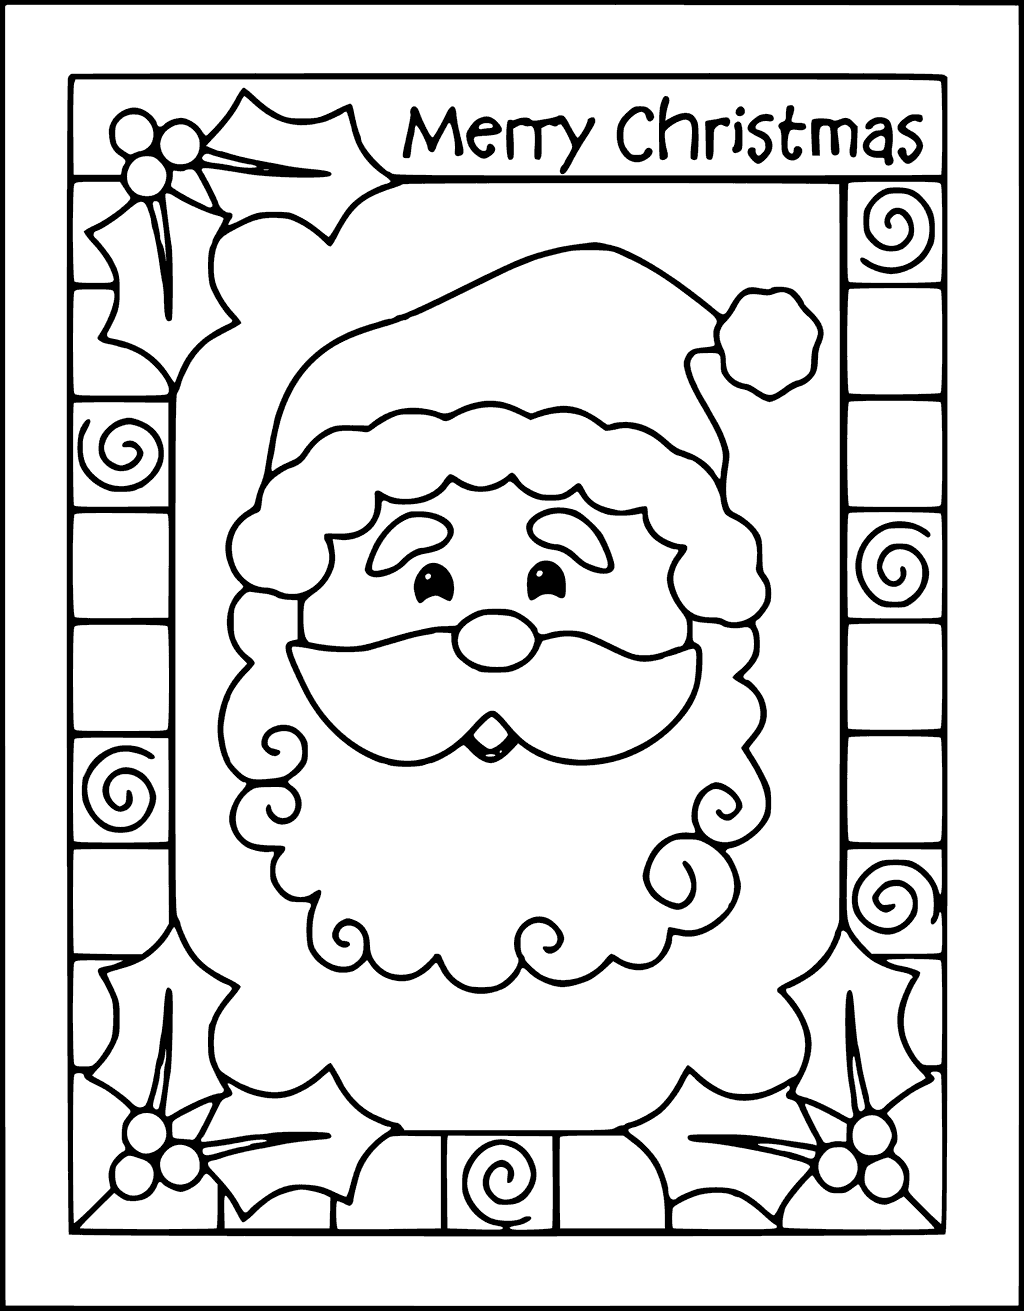 Christmas Card Printable Coloring Pages At Getdrawings Com Free